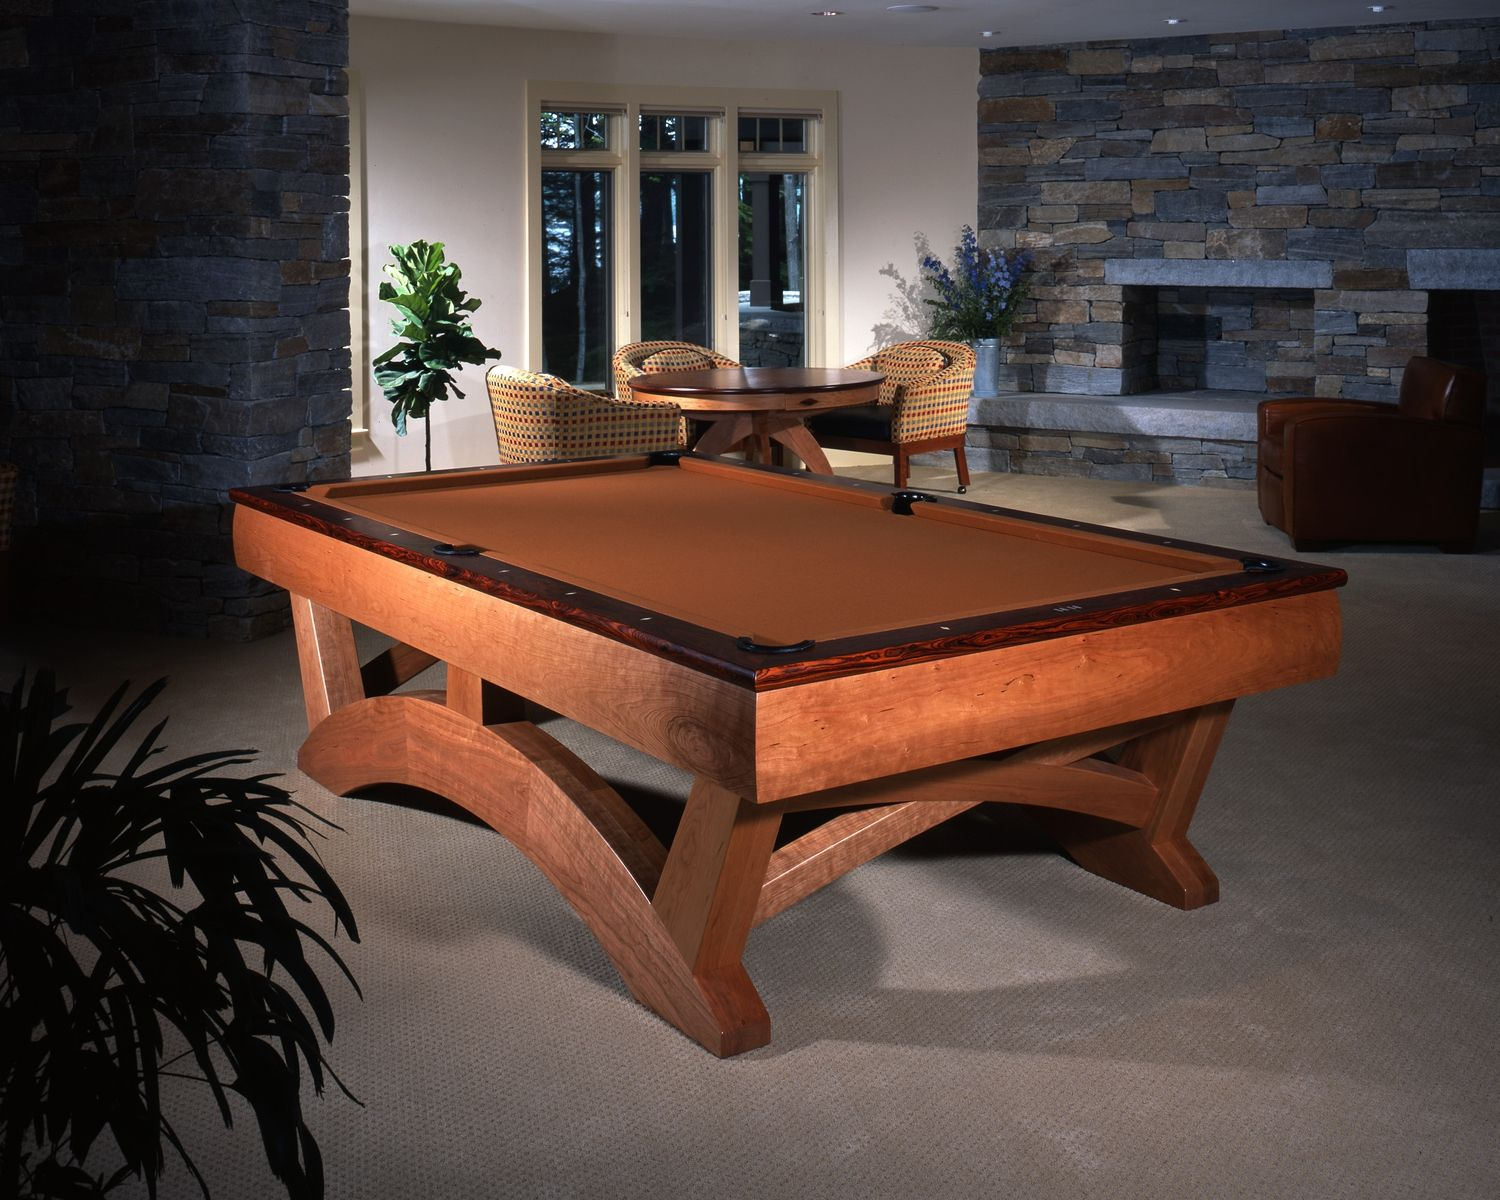 Hand Made Arch Pool Table By Hatch Studio Custommade Com